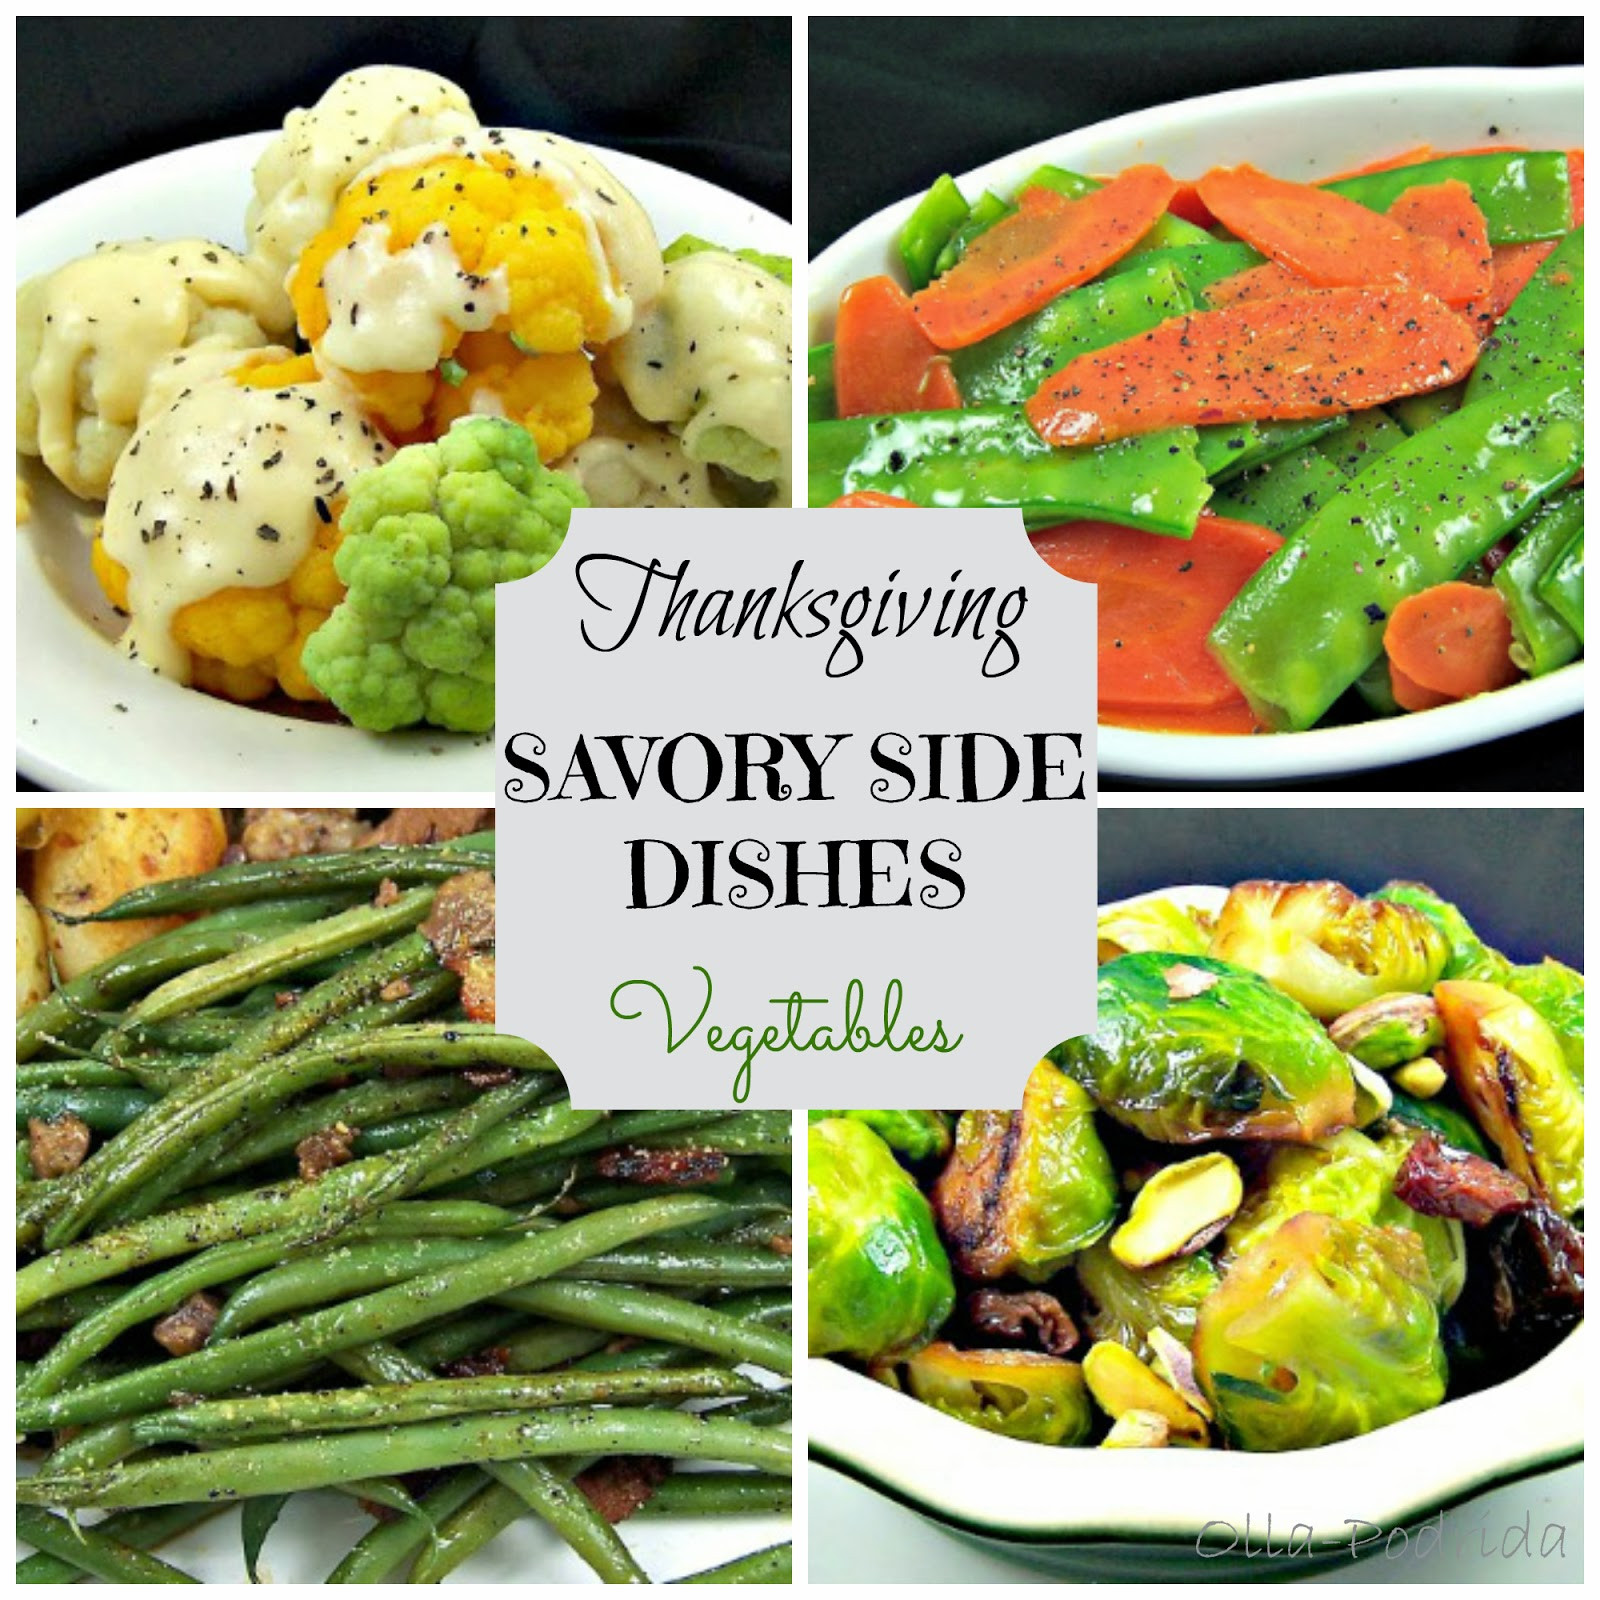 Thanksgiving Vegetable Recipes Side Dishes  Olla Podrida Thanksgiving Savory Side Dishes Ve ables